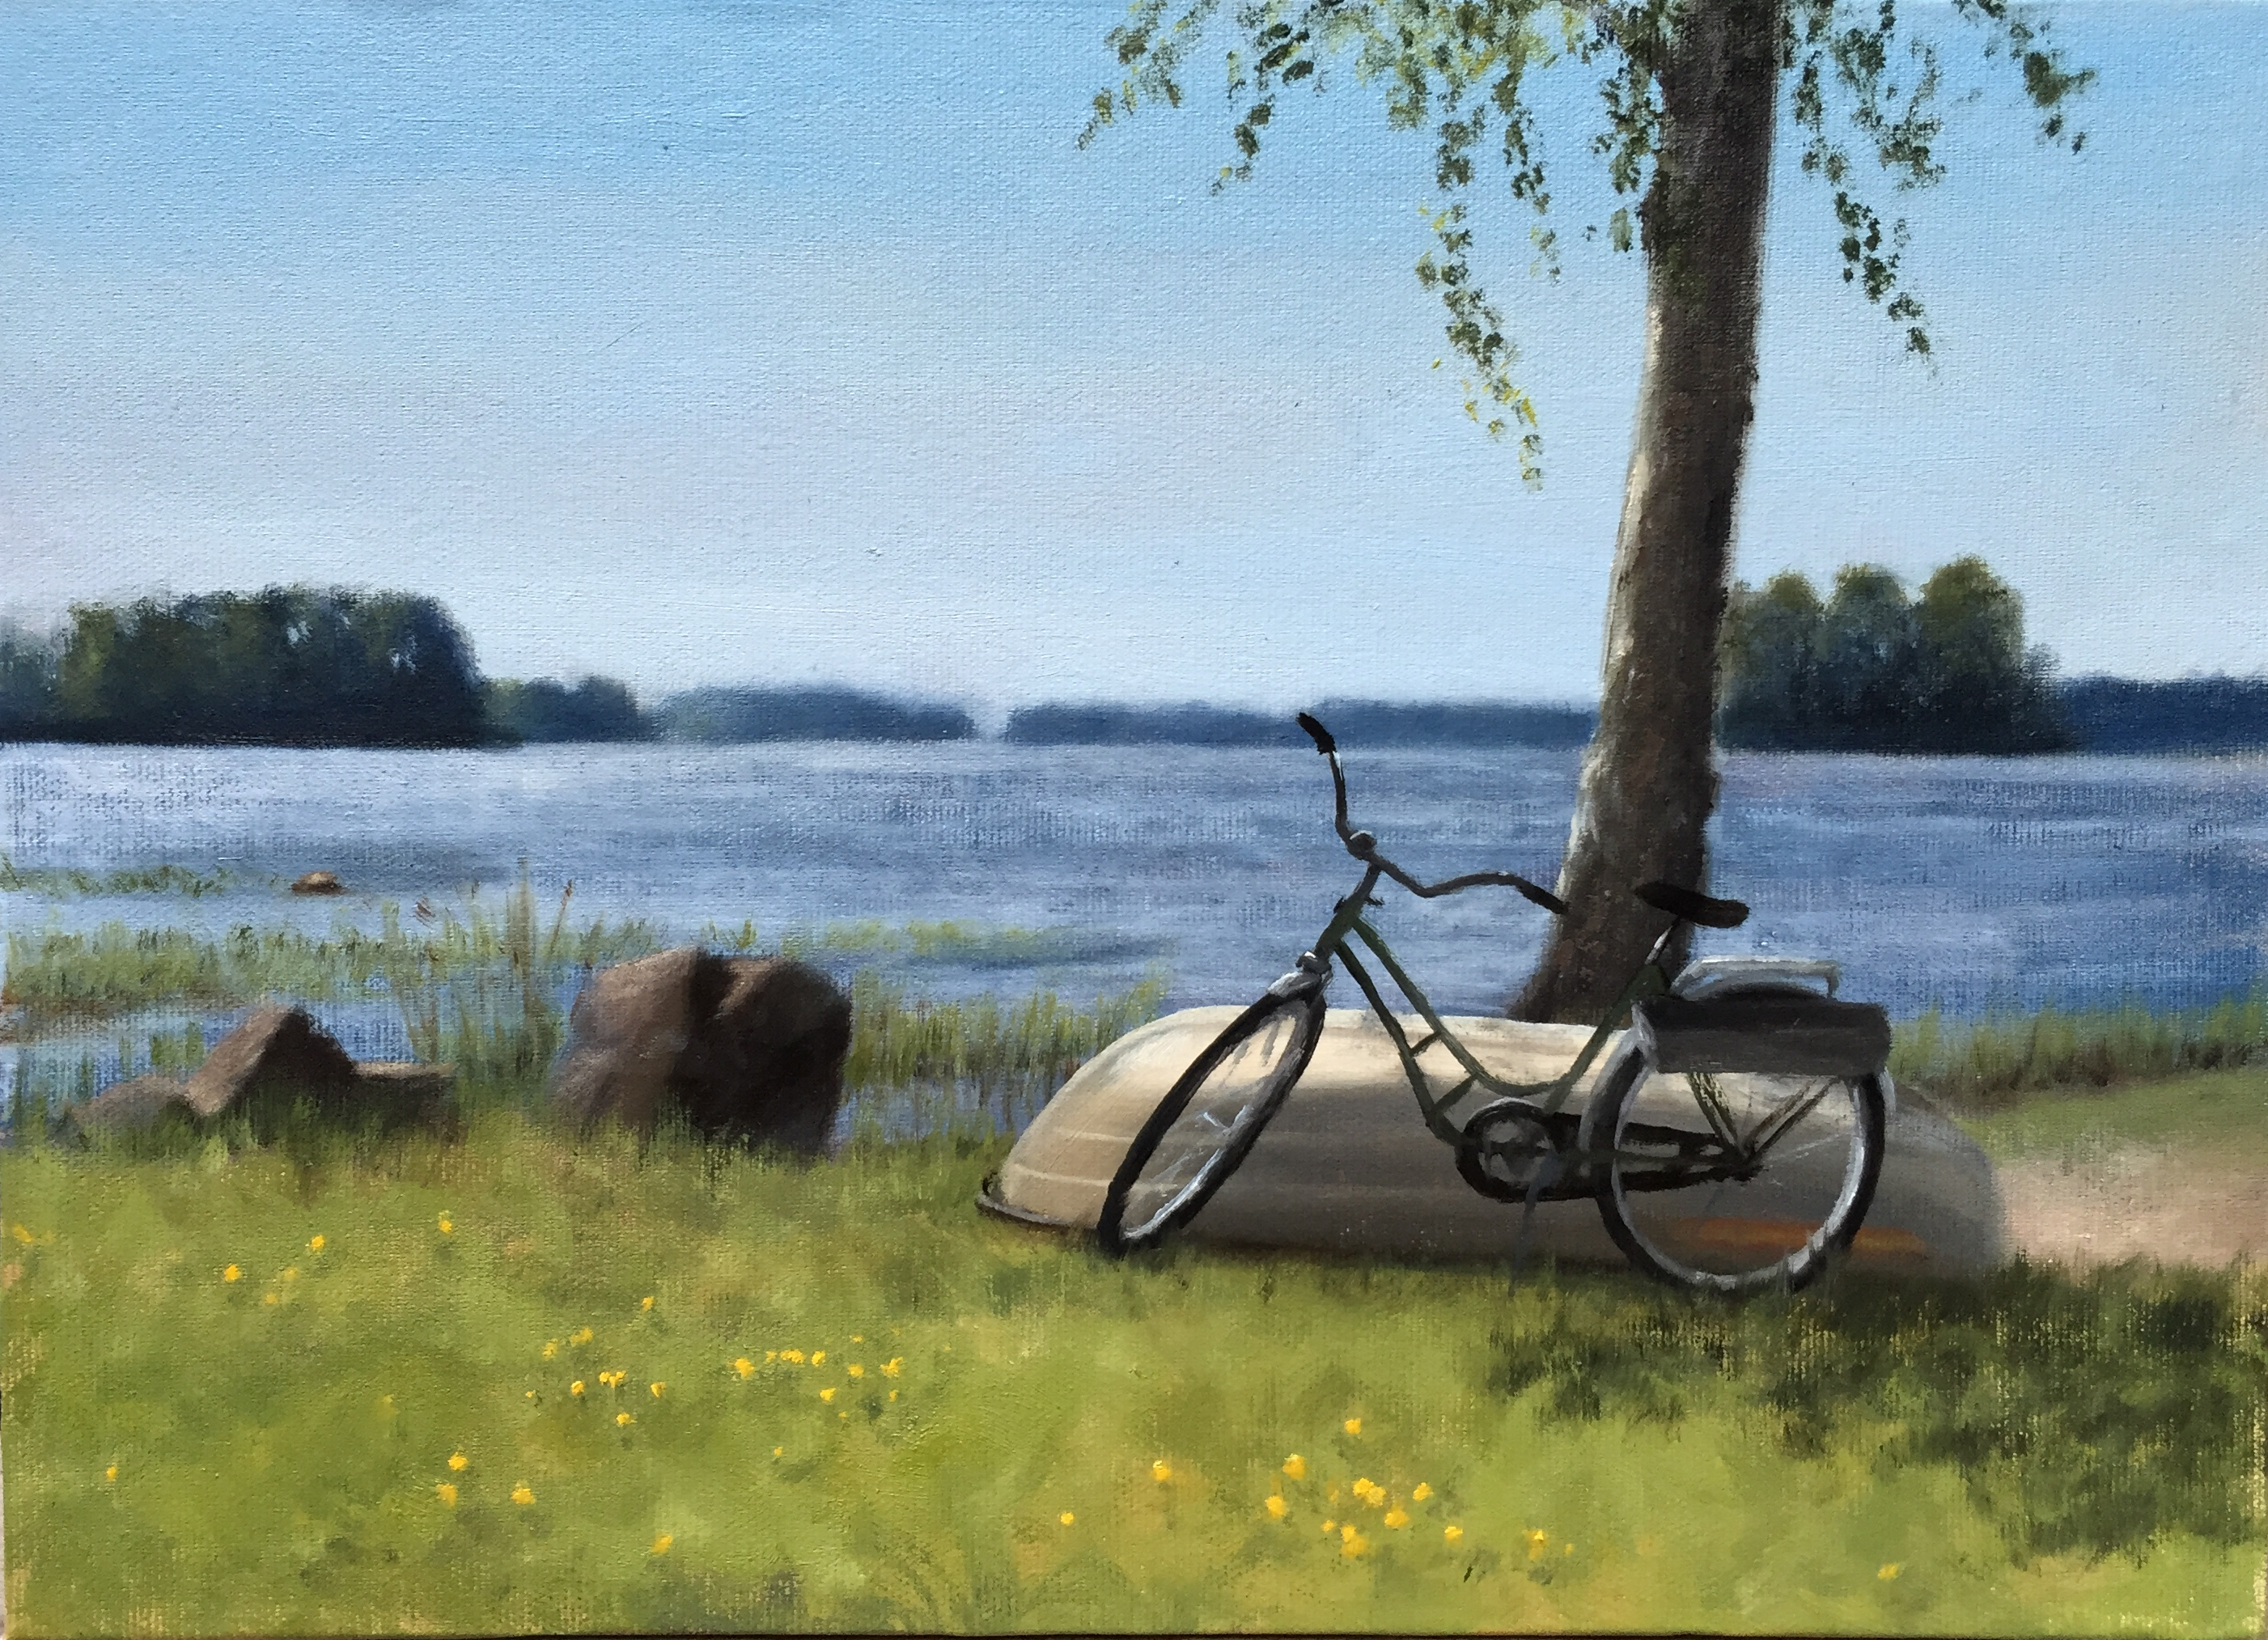 A Bicycle and a Boat by a Lake